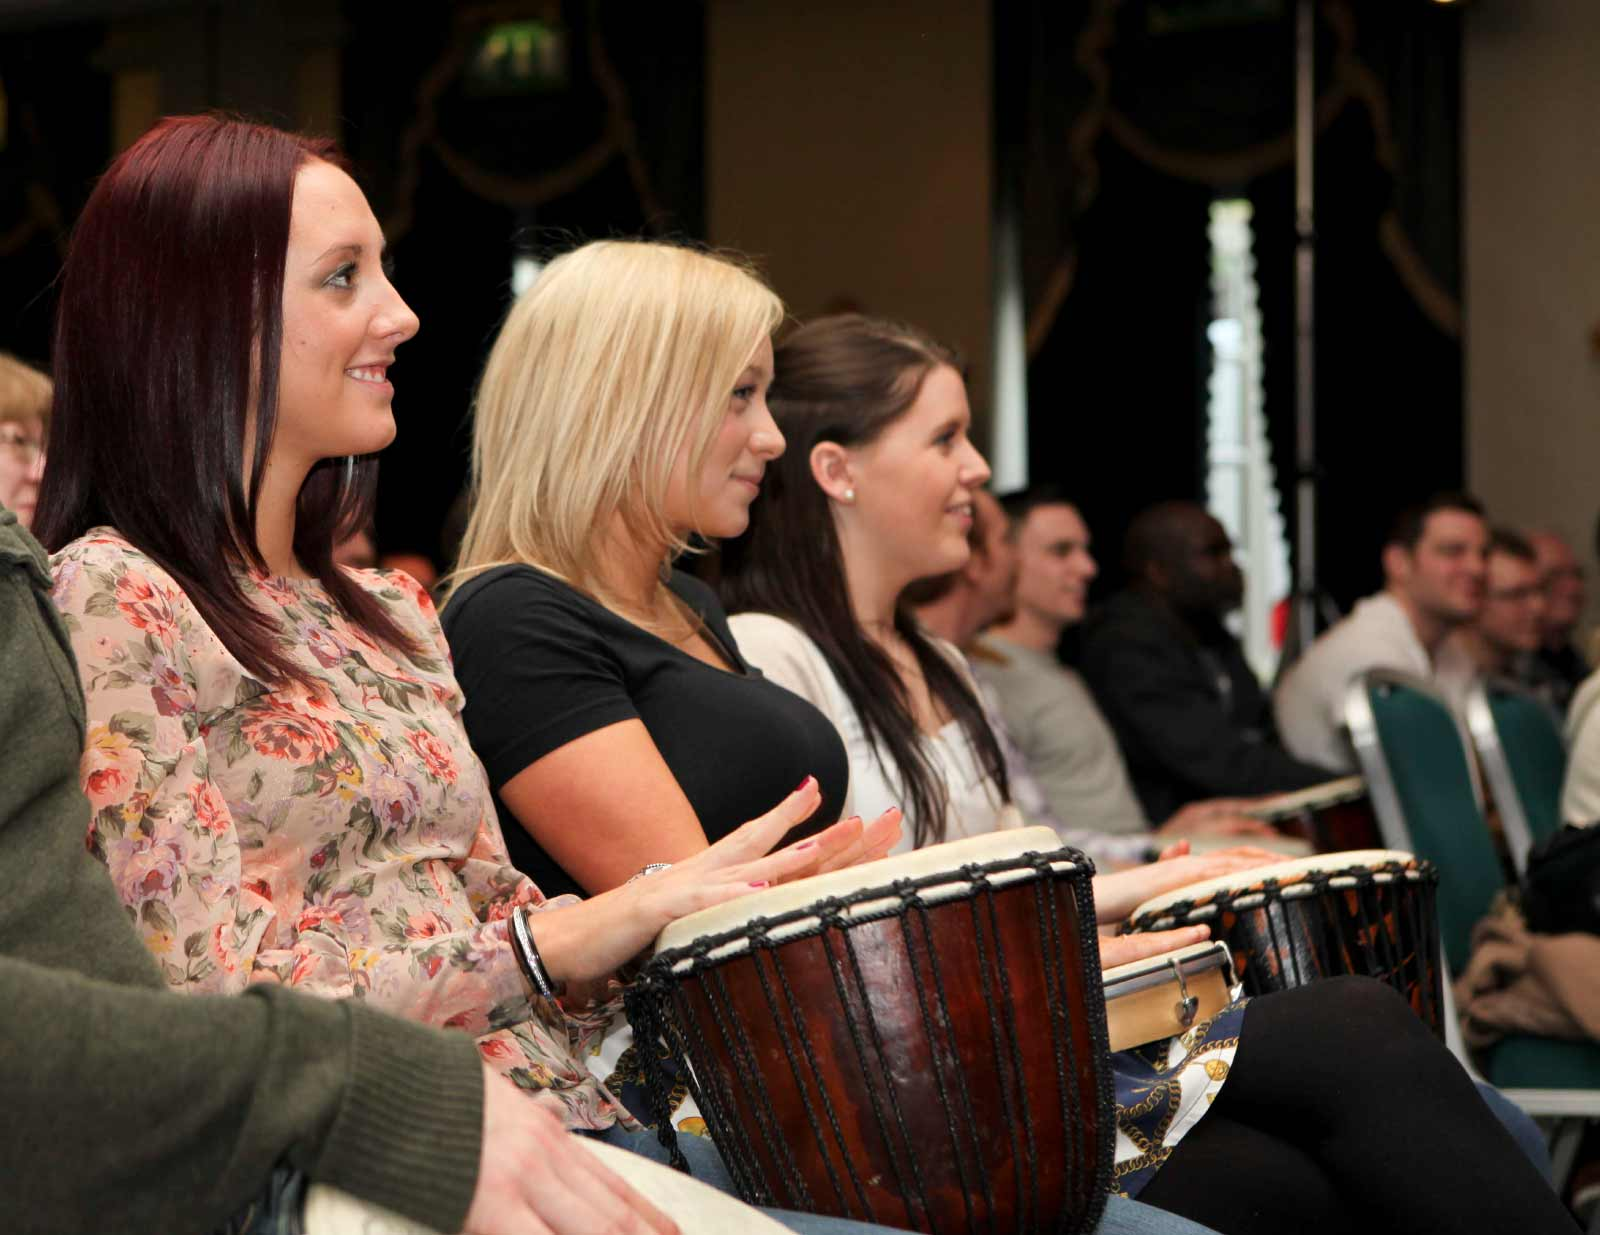 a drumming event